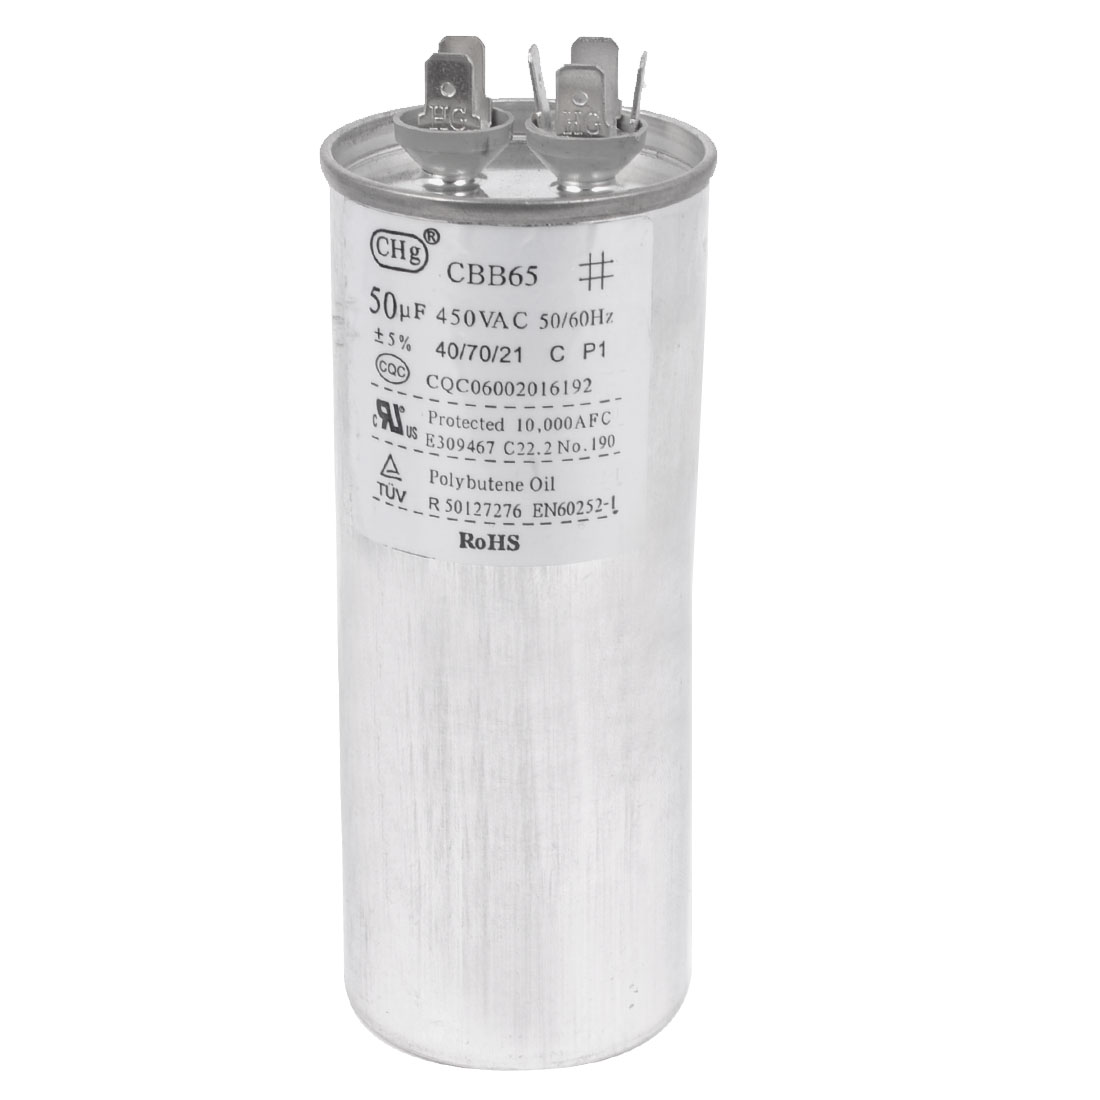 Air Conditioner AC 450V 50uF Cylindrical Motor Running Capacitor CBB65